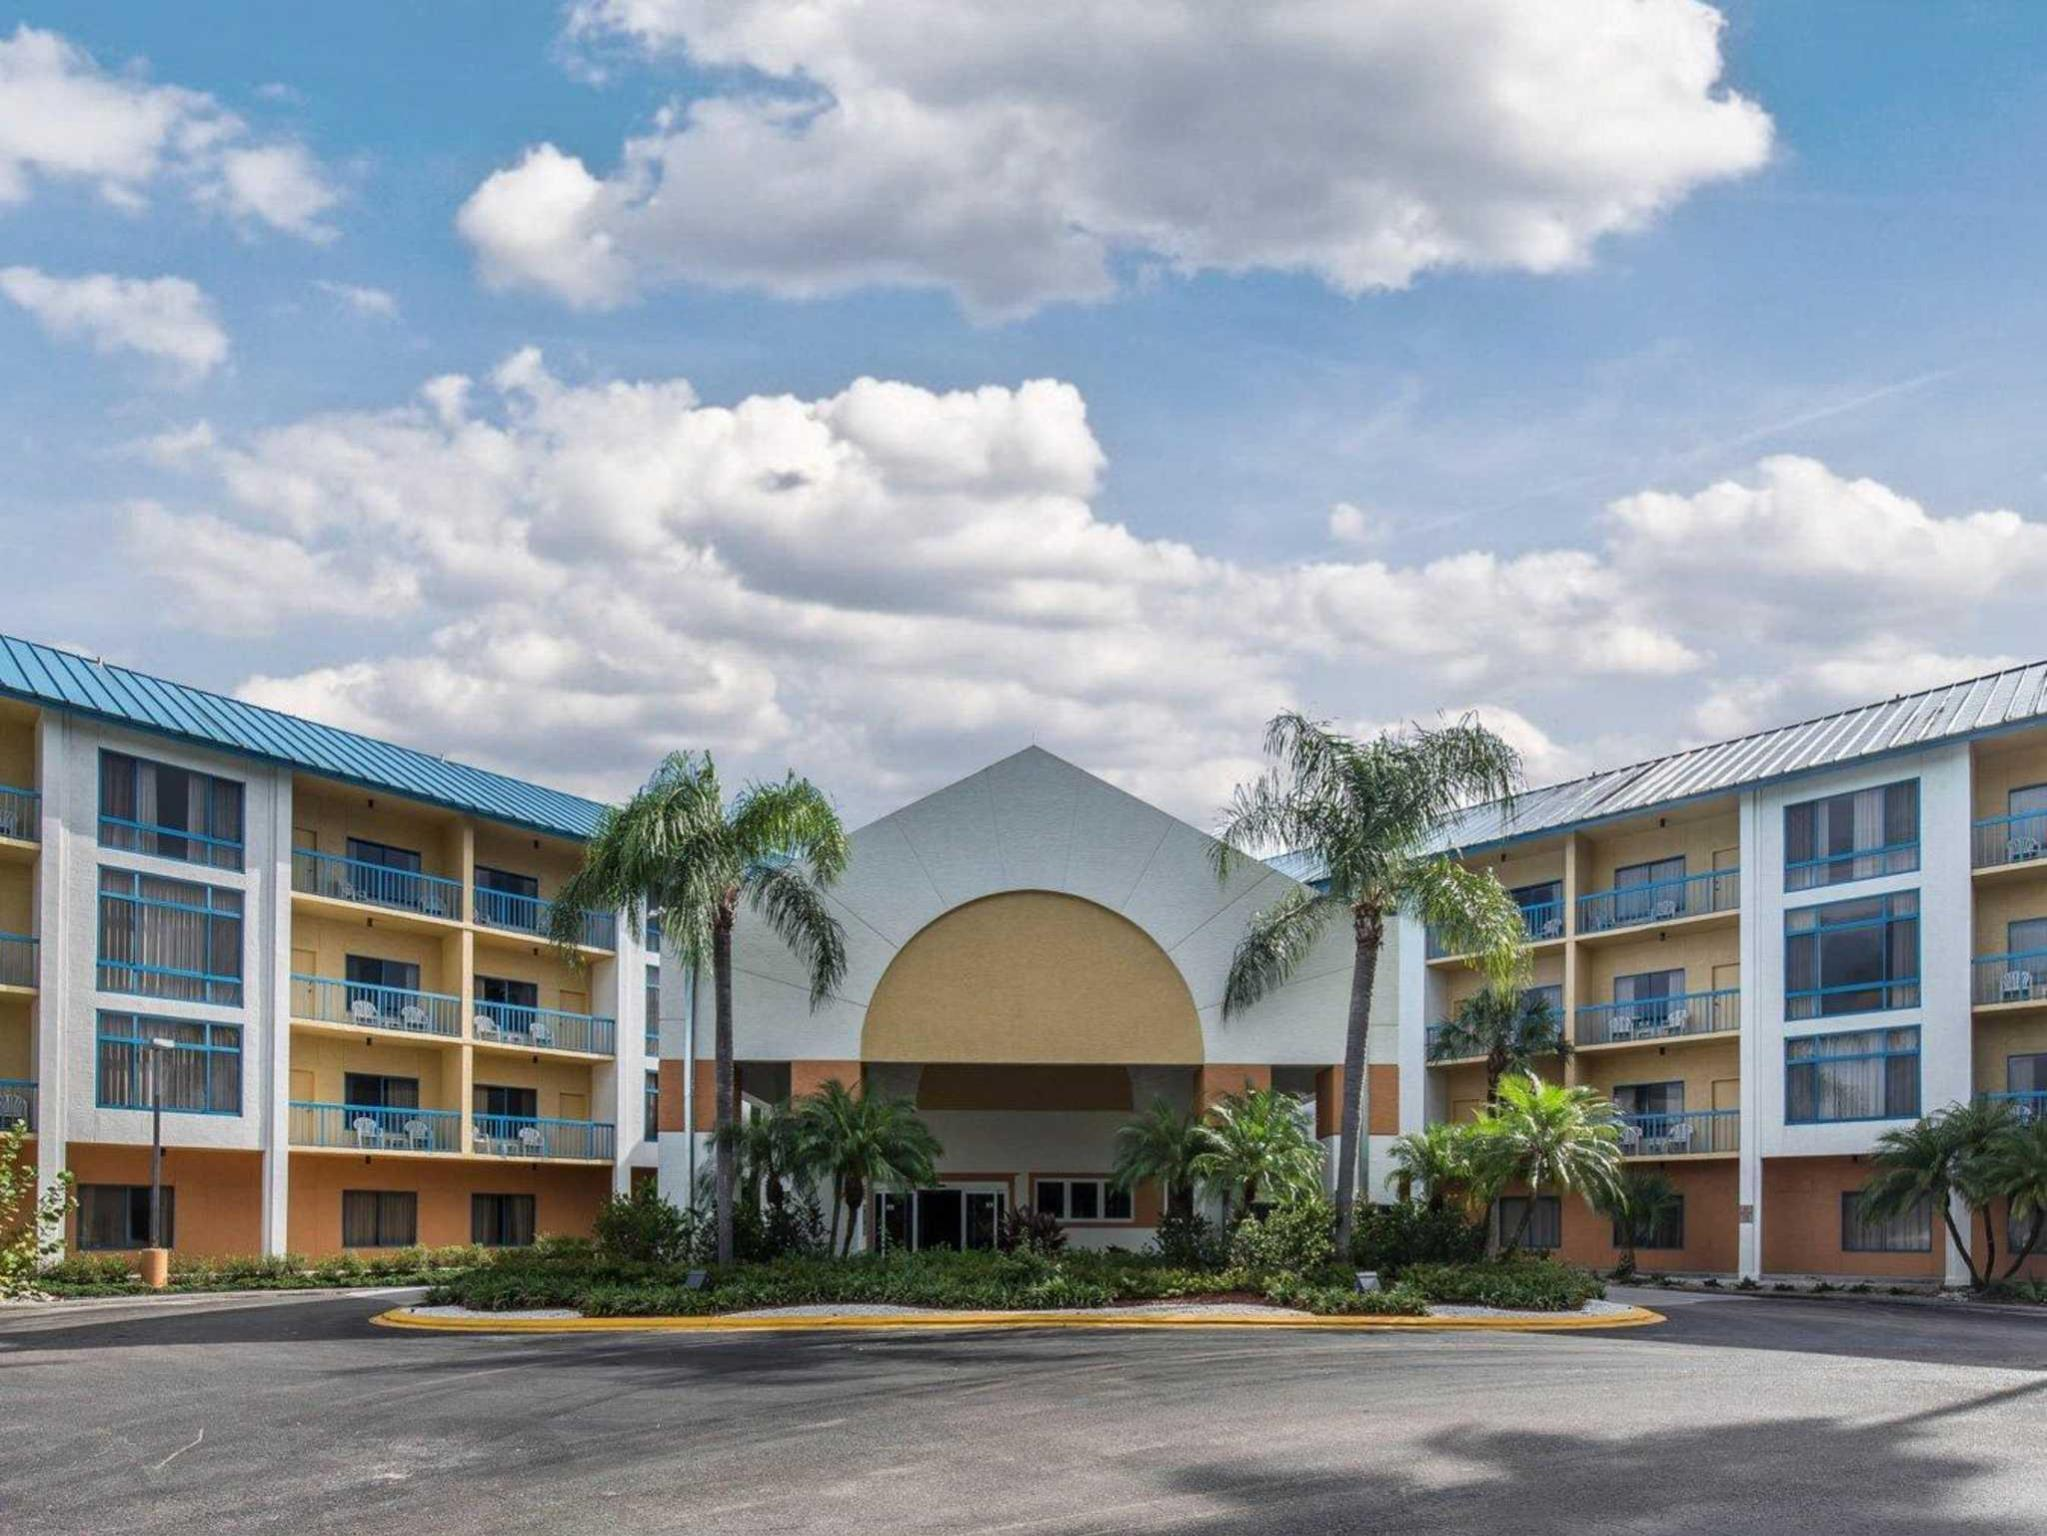 fort inn  u0026 executive suites hotels near cedar hammock golf  u0026 country club naples  fl    best      rh   agoda